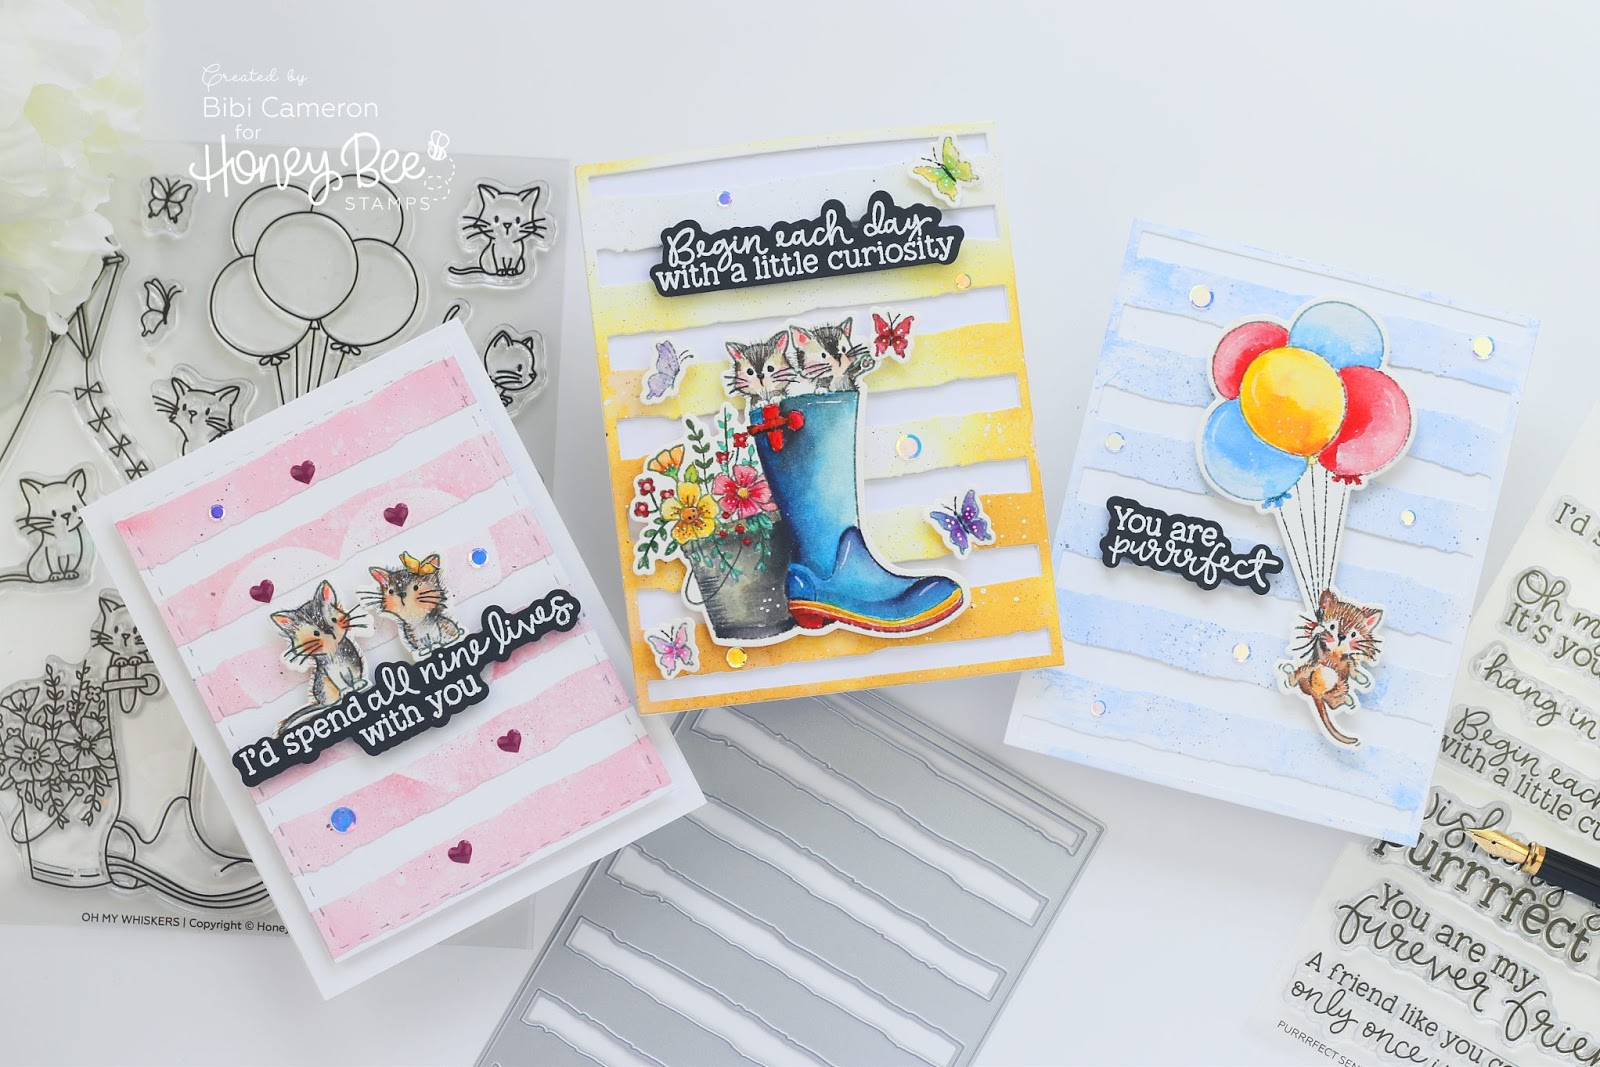 Happy Bee Day Blog Hop Day 2| Honey Bee Stamps 4th anniversary + Giveaway!